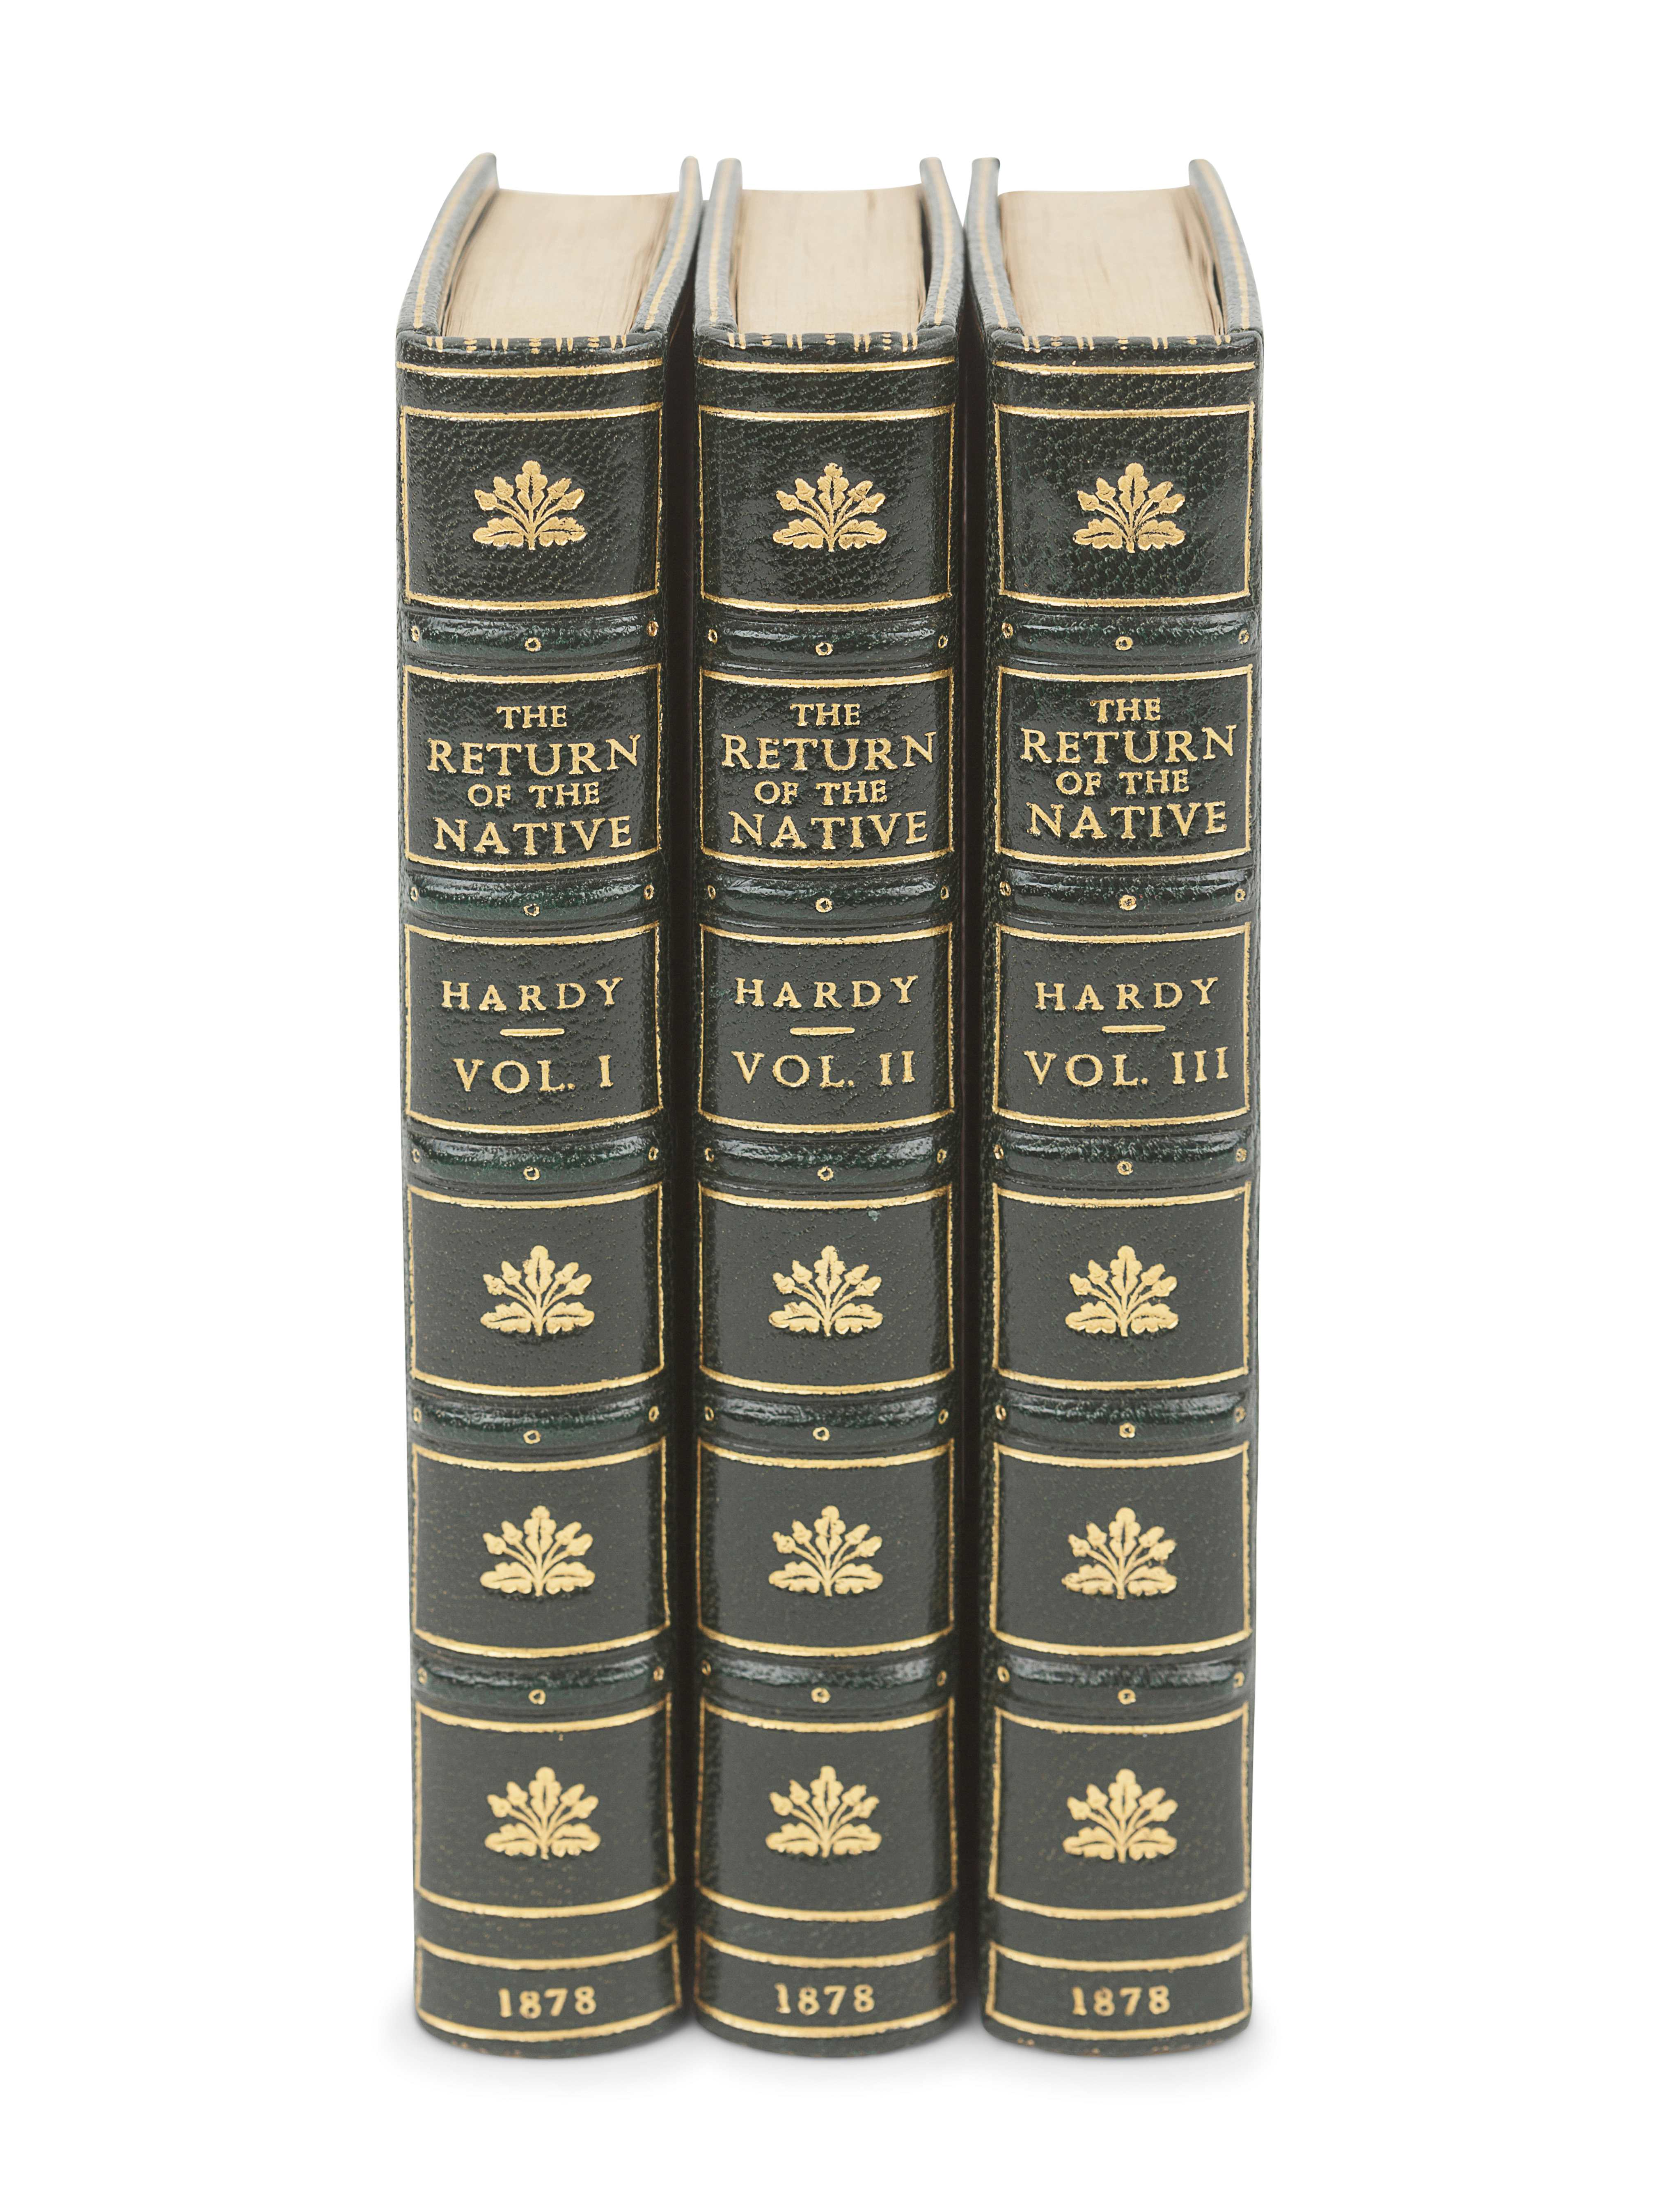 HARDY, Thomas (1840-1928). The Return of the Native. London: Smith, Elder, & Co., 1878. - Image 2 of 3